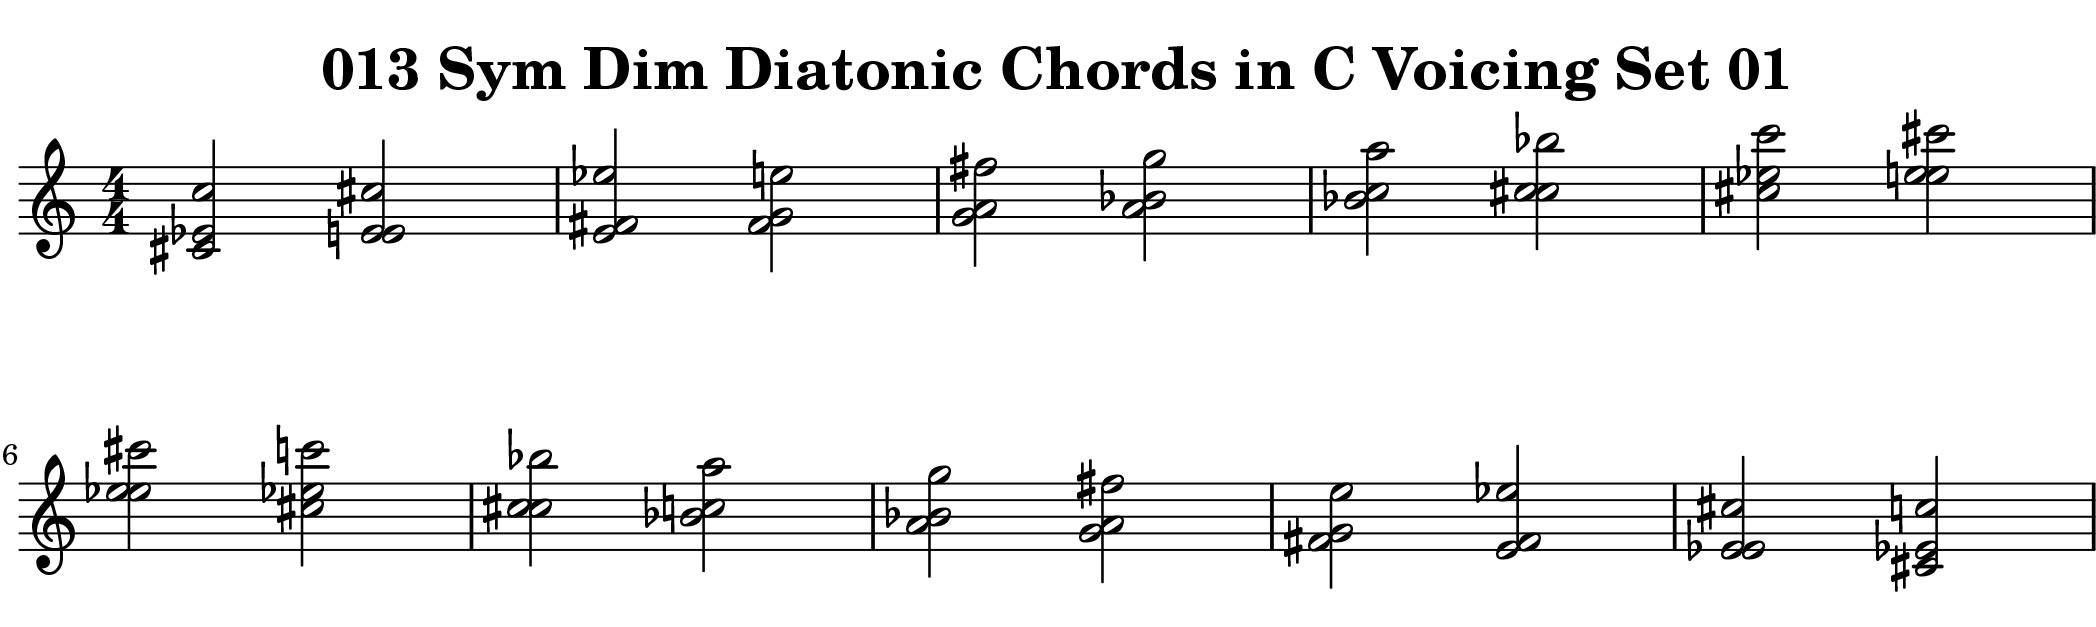 Example from ChopBusters 013: Diatonic Chords of Symmetrical Diminished Scale Ascending and Descending